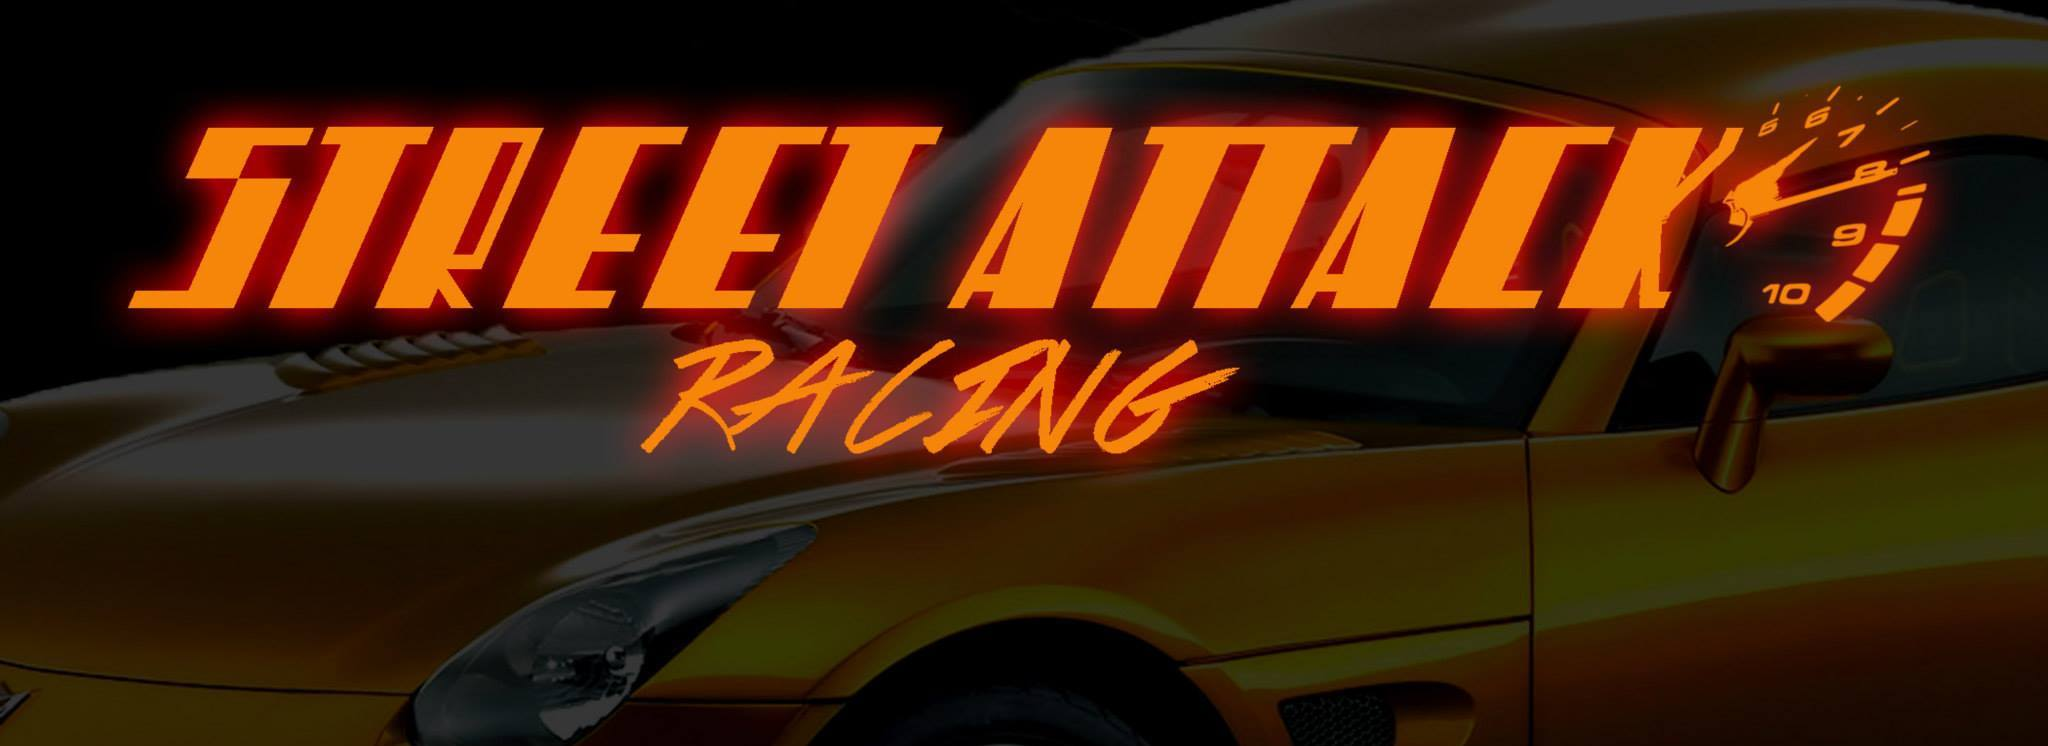 Street Attack Racing